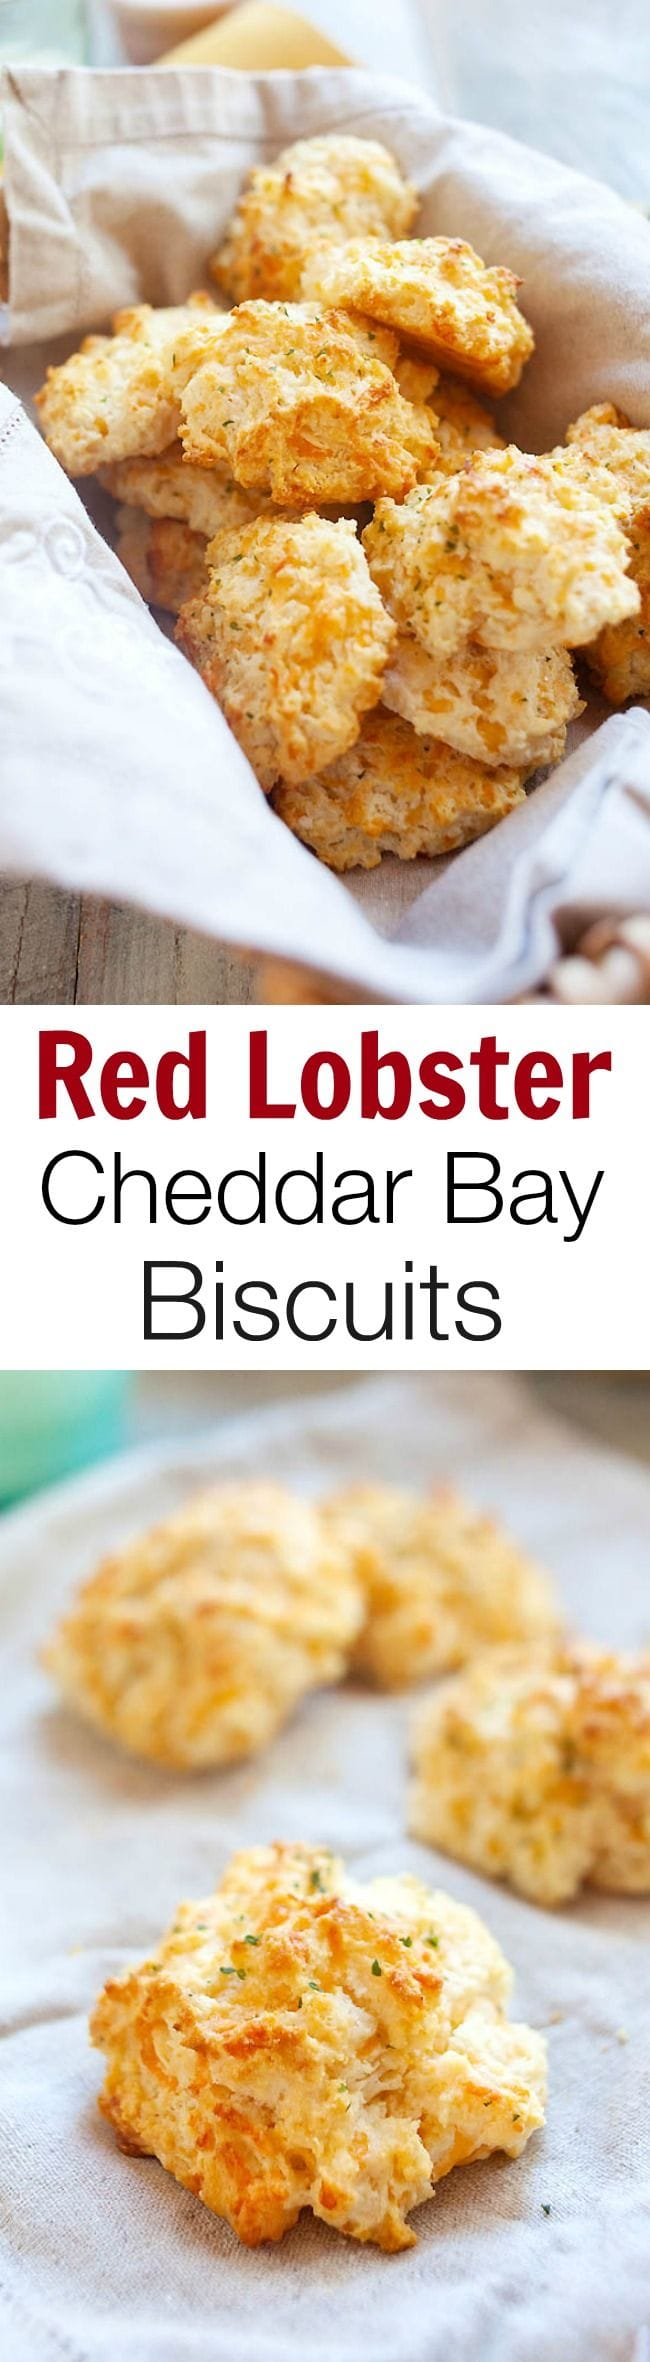 Red Lobster biscuits are buttery and cheesy cheddar bay biscuits served at Red Lobster. This homemade  copycat recipe tastes just like the real deal, fail proof and so easy to make at home! | rasamalaysia.com